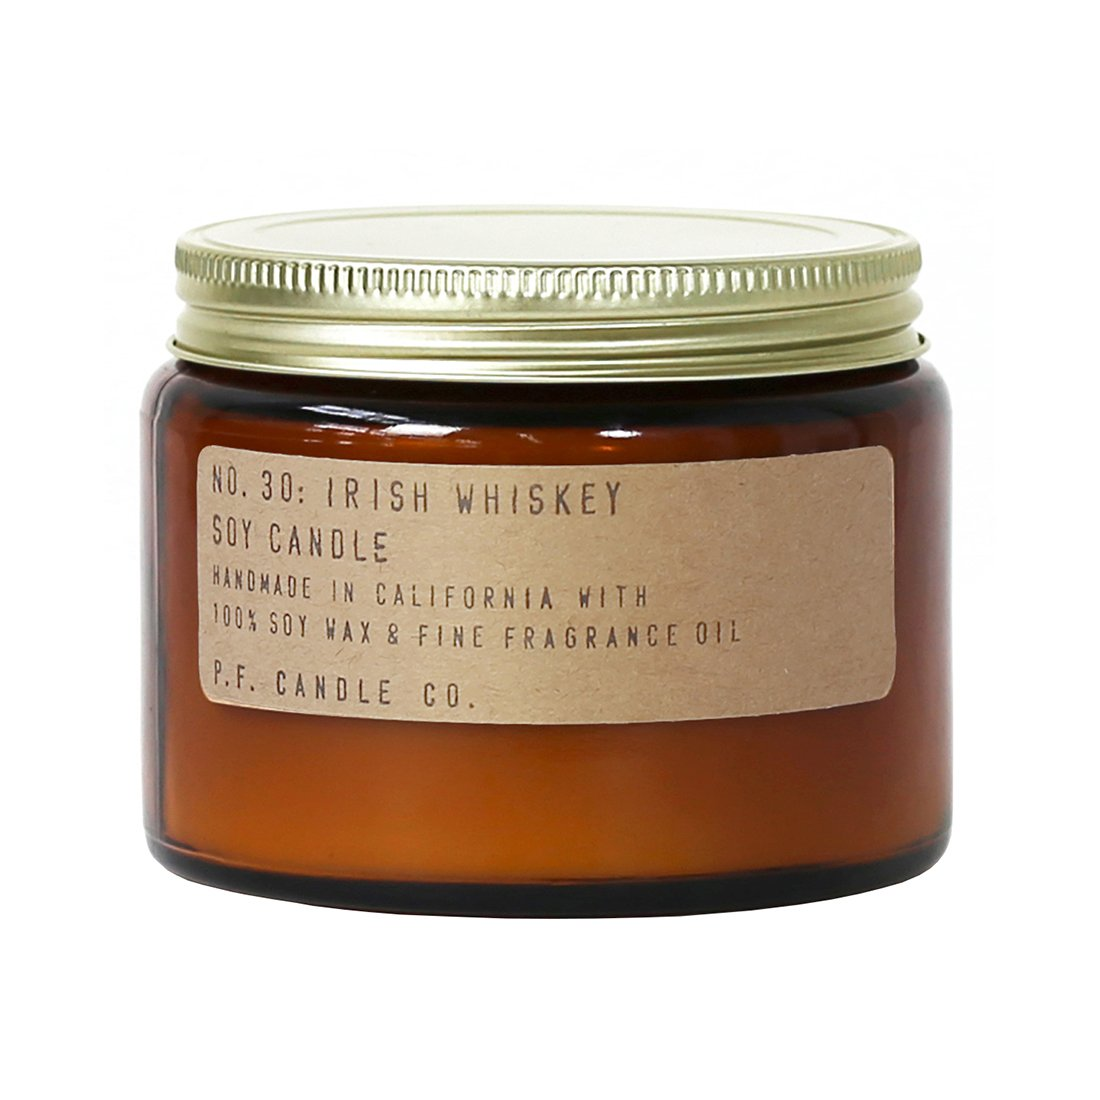 P.F. Candle Co. - No. 30: Irish Whiskey Candle (Double Wick 14 oz)